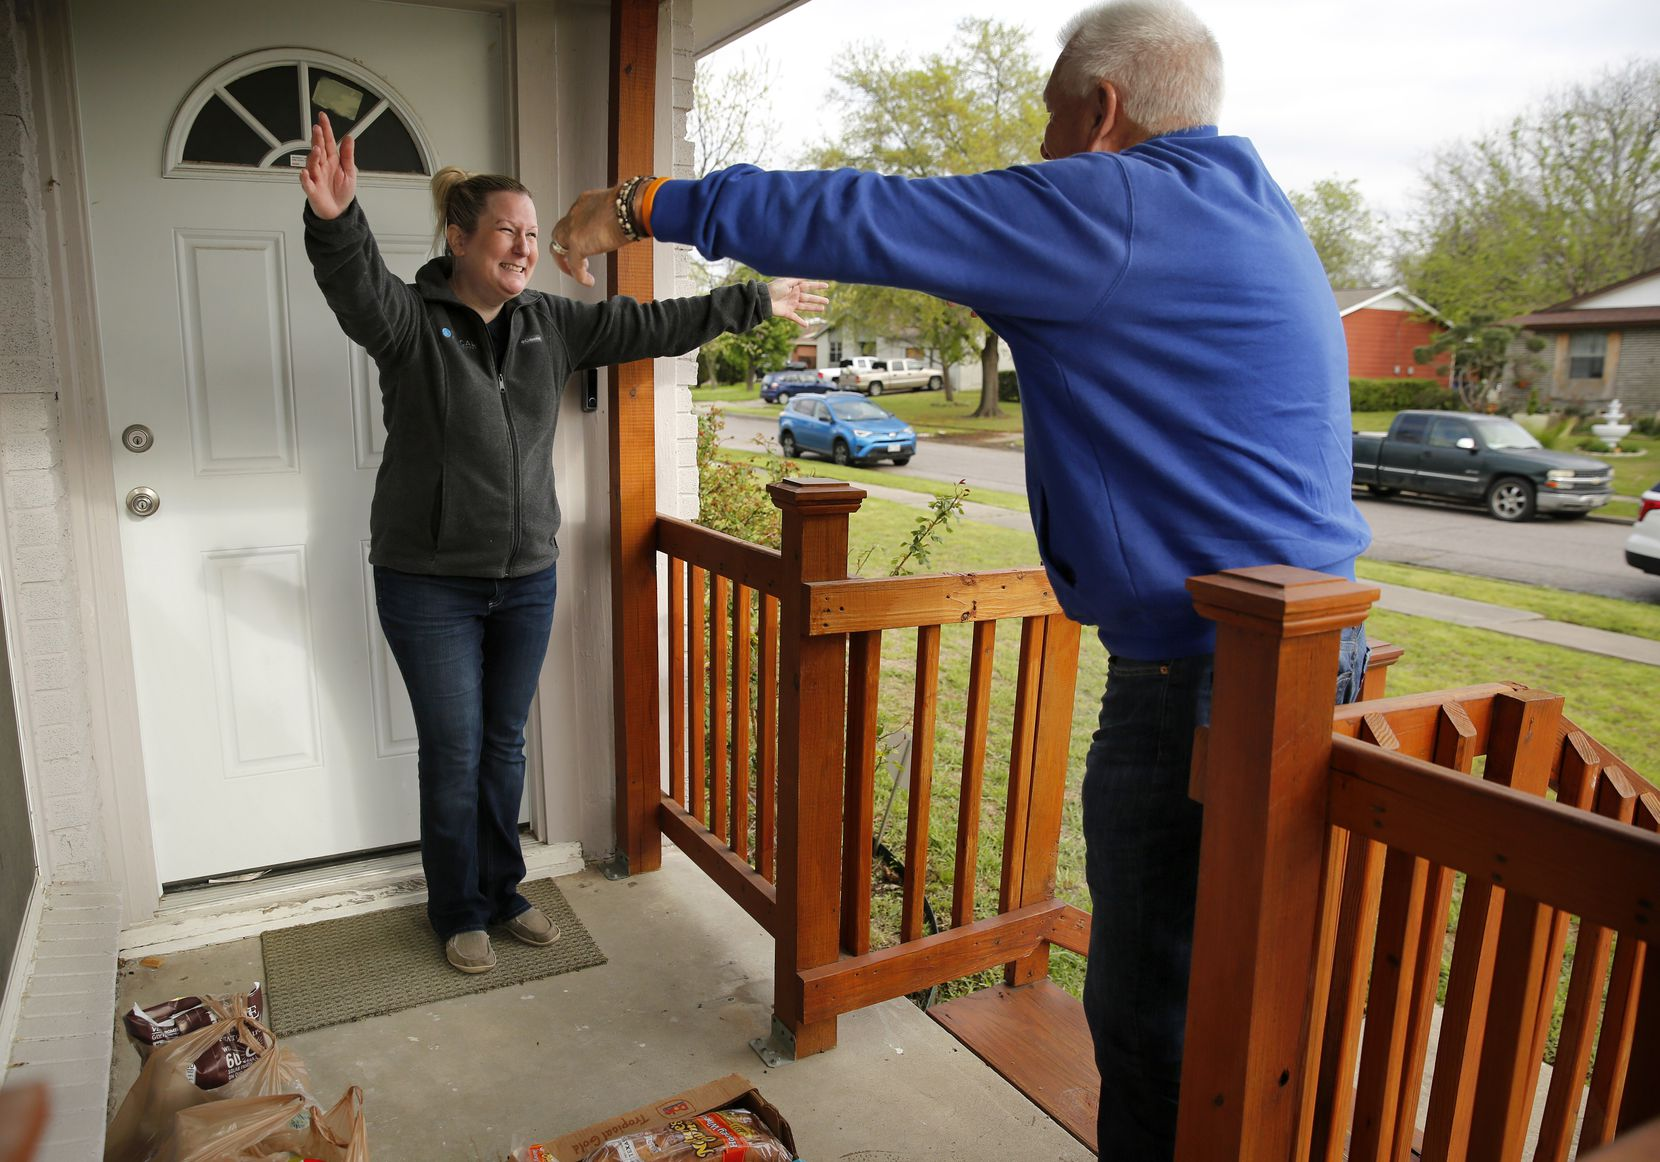 Former coach and local sportscaster Eddy Clinton of Plano (right) gives Kristin Tarrence a social distance hug after delivering a load of groceries to her Farmers Branch, Texas home, Friday, March 20, 2020. Tarrence found Clinton on Facebook and reached out for assistance during the coronavirus outbreak. Eddy and his wife Anna Clinton pulled together the food run in which he refused to be compensated. They just wanted to help out.